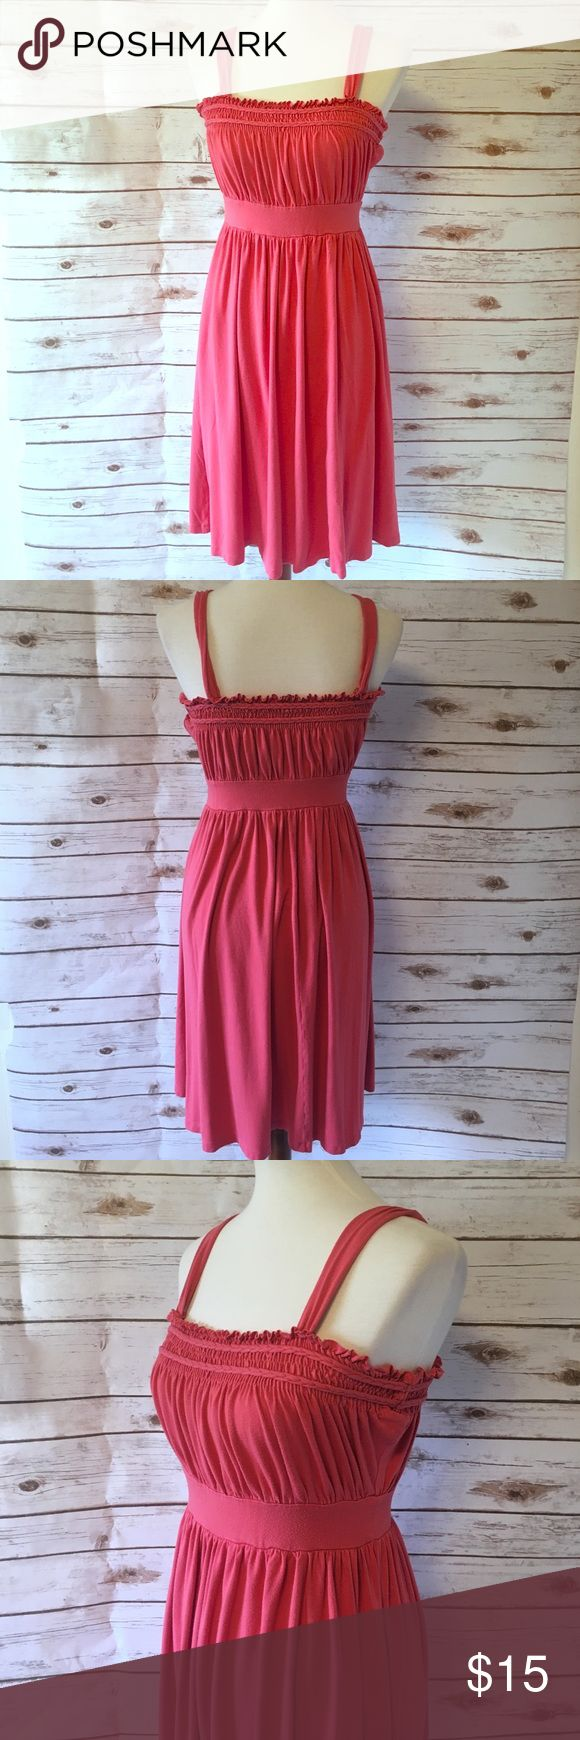 Halogen Pink Strappy Dress Comfortable dress with elastic around the top for a snug fit. Rope detail. One of the straps in the back is slightly tearing (shown in photo). 95% Rayon / 5% Spandex Halogen Dresses Midi